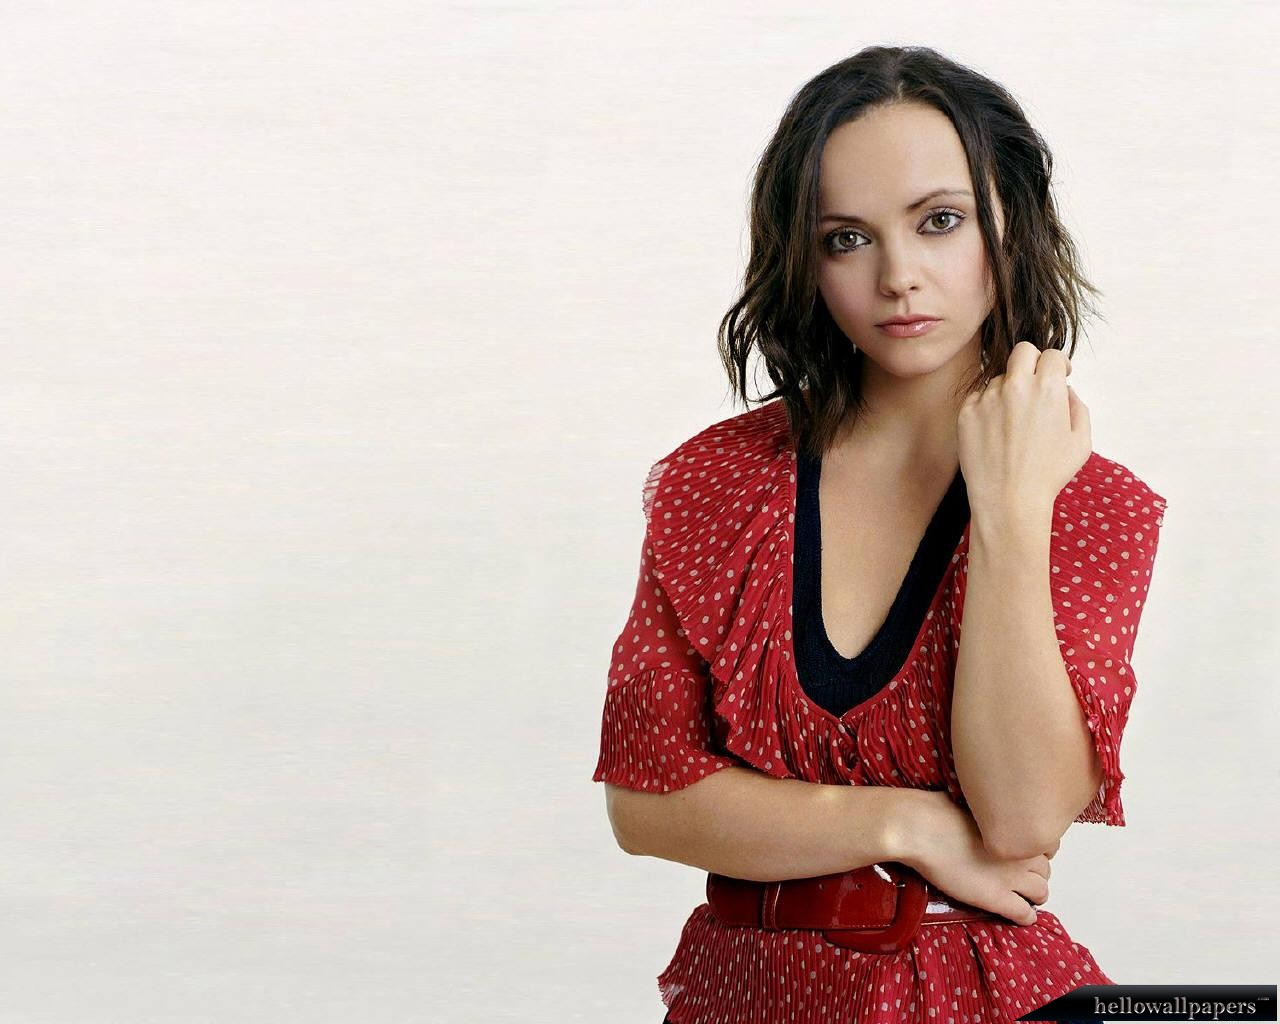 Wallpaper Stock Christina Ricci wallpapers download 1280x1024